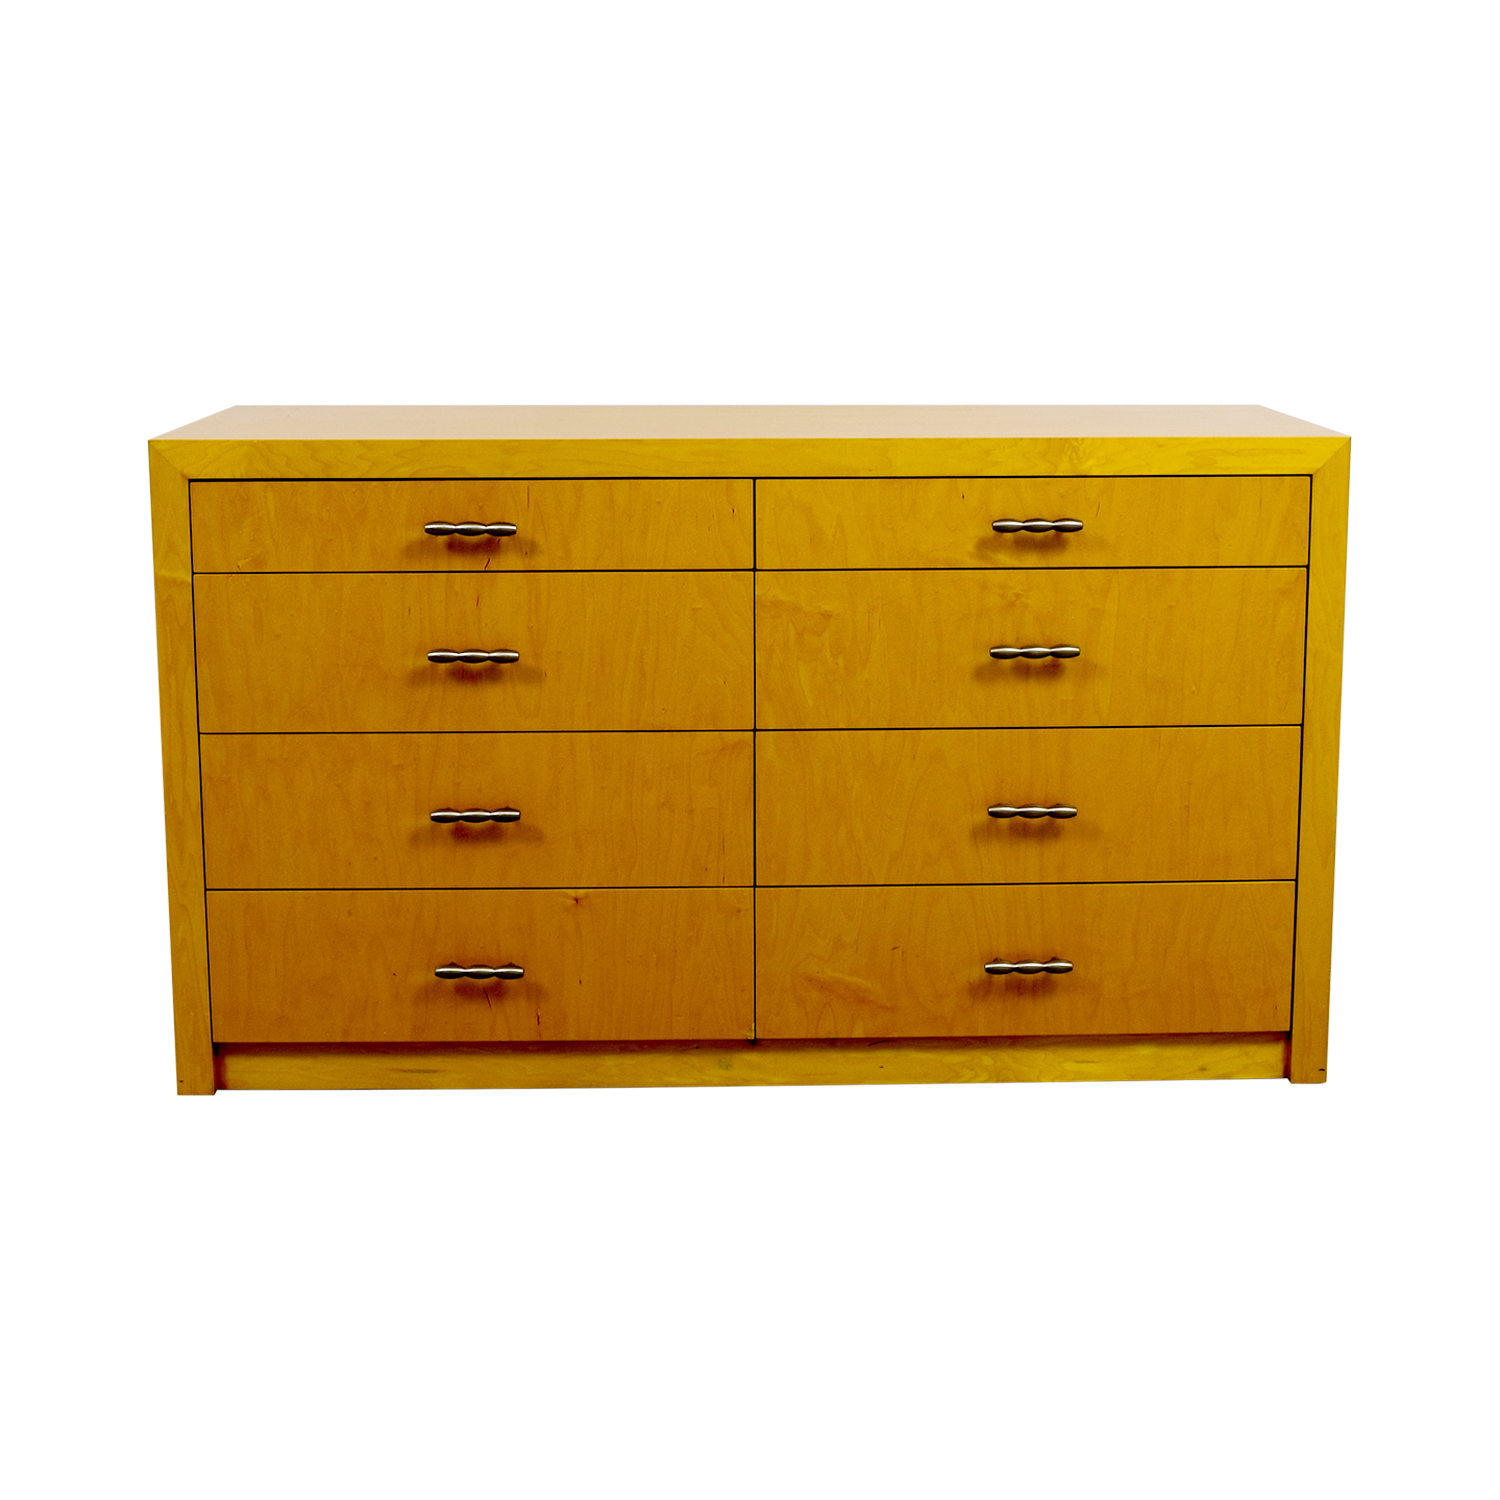 Manhattan Cabinetry Manhattan Cabinetry Maple Eight-Drawer Dresser Dressers